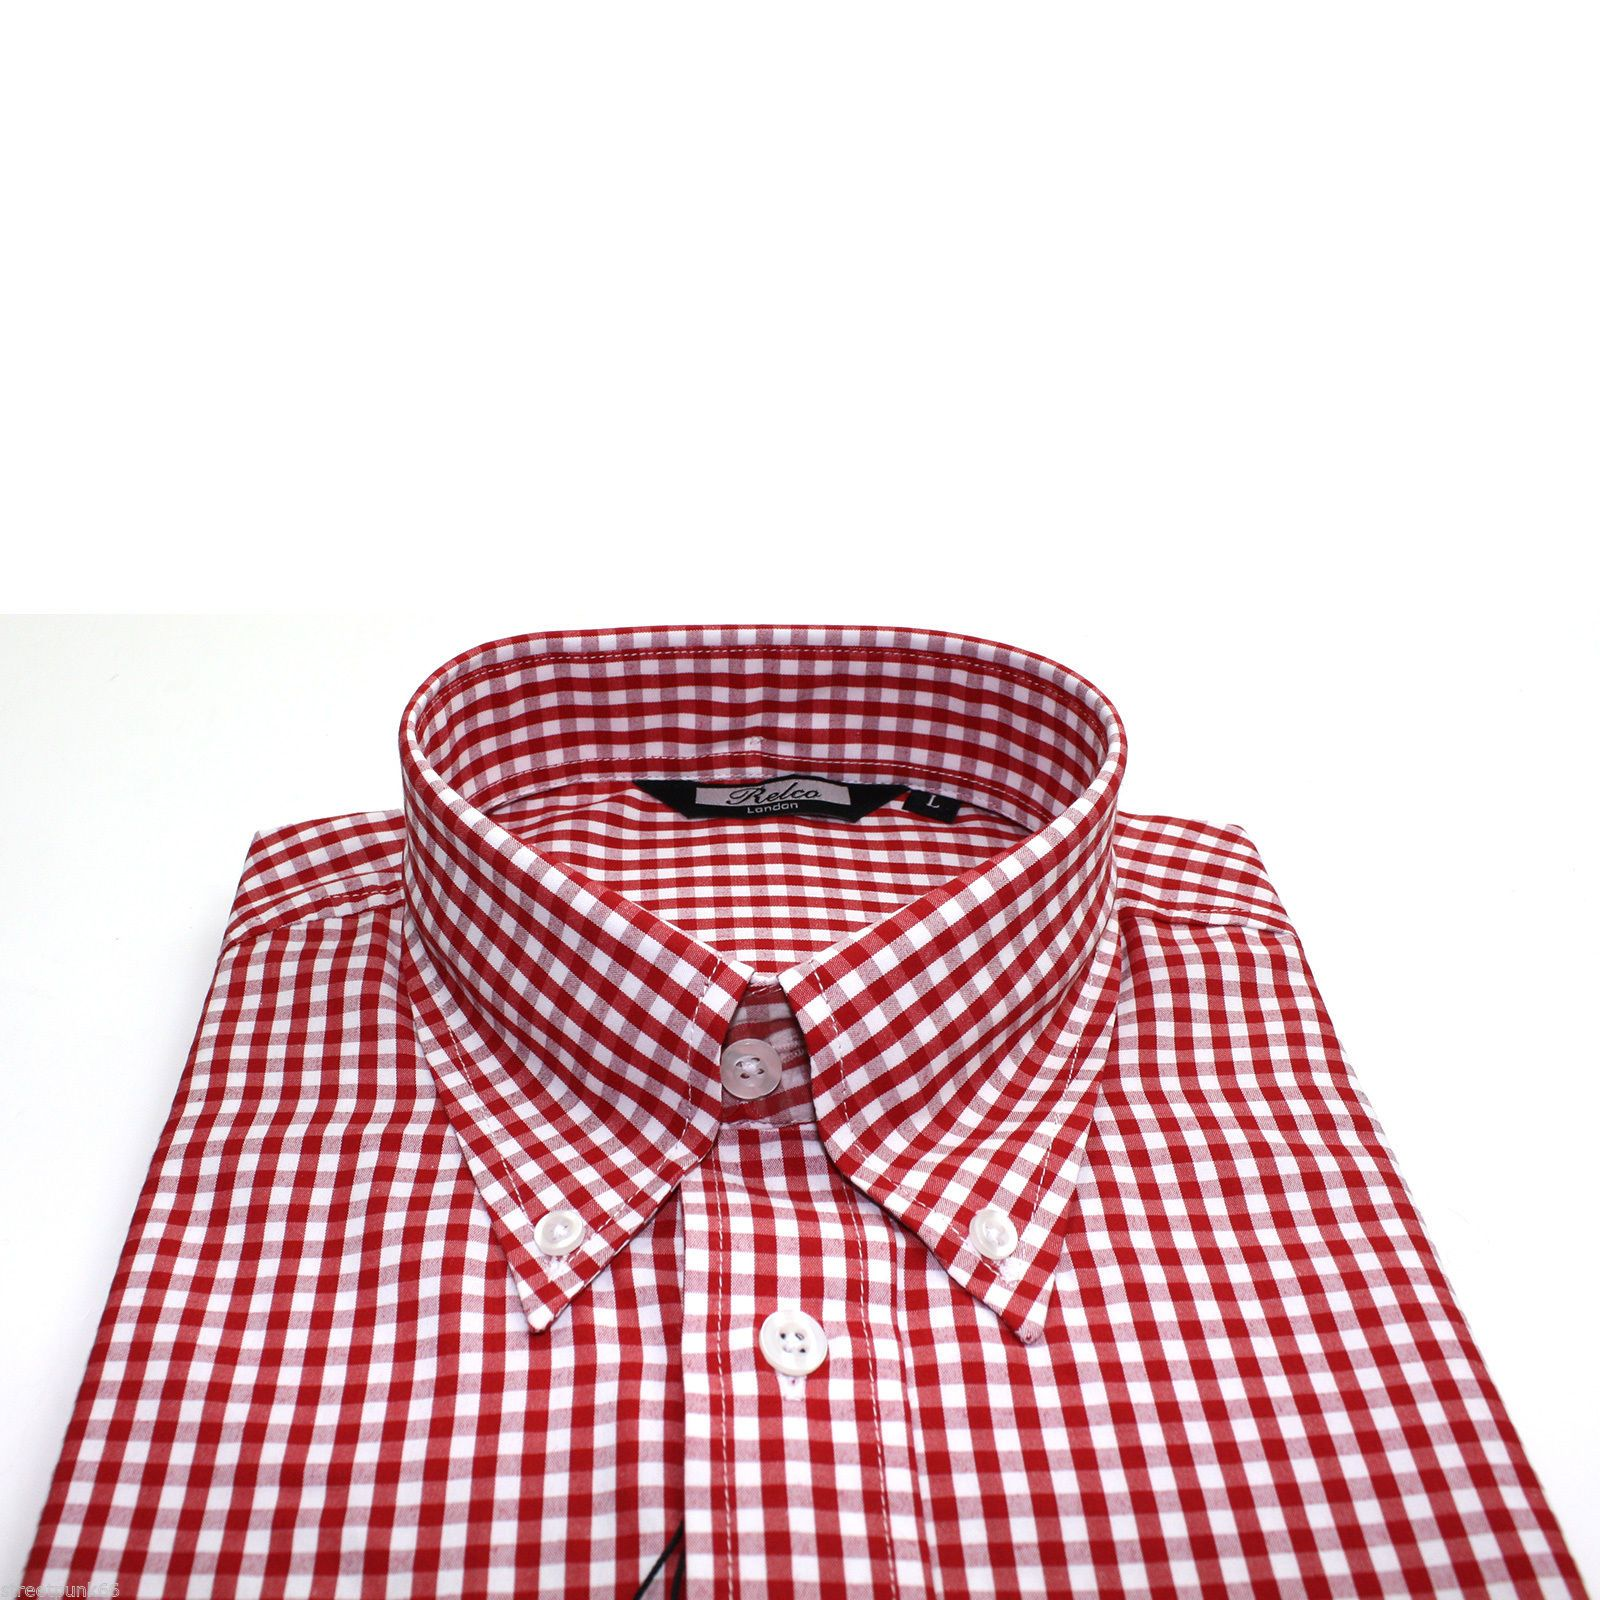 Relco Mens Red White Gingham Short Sleeved Shirt Button